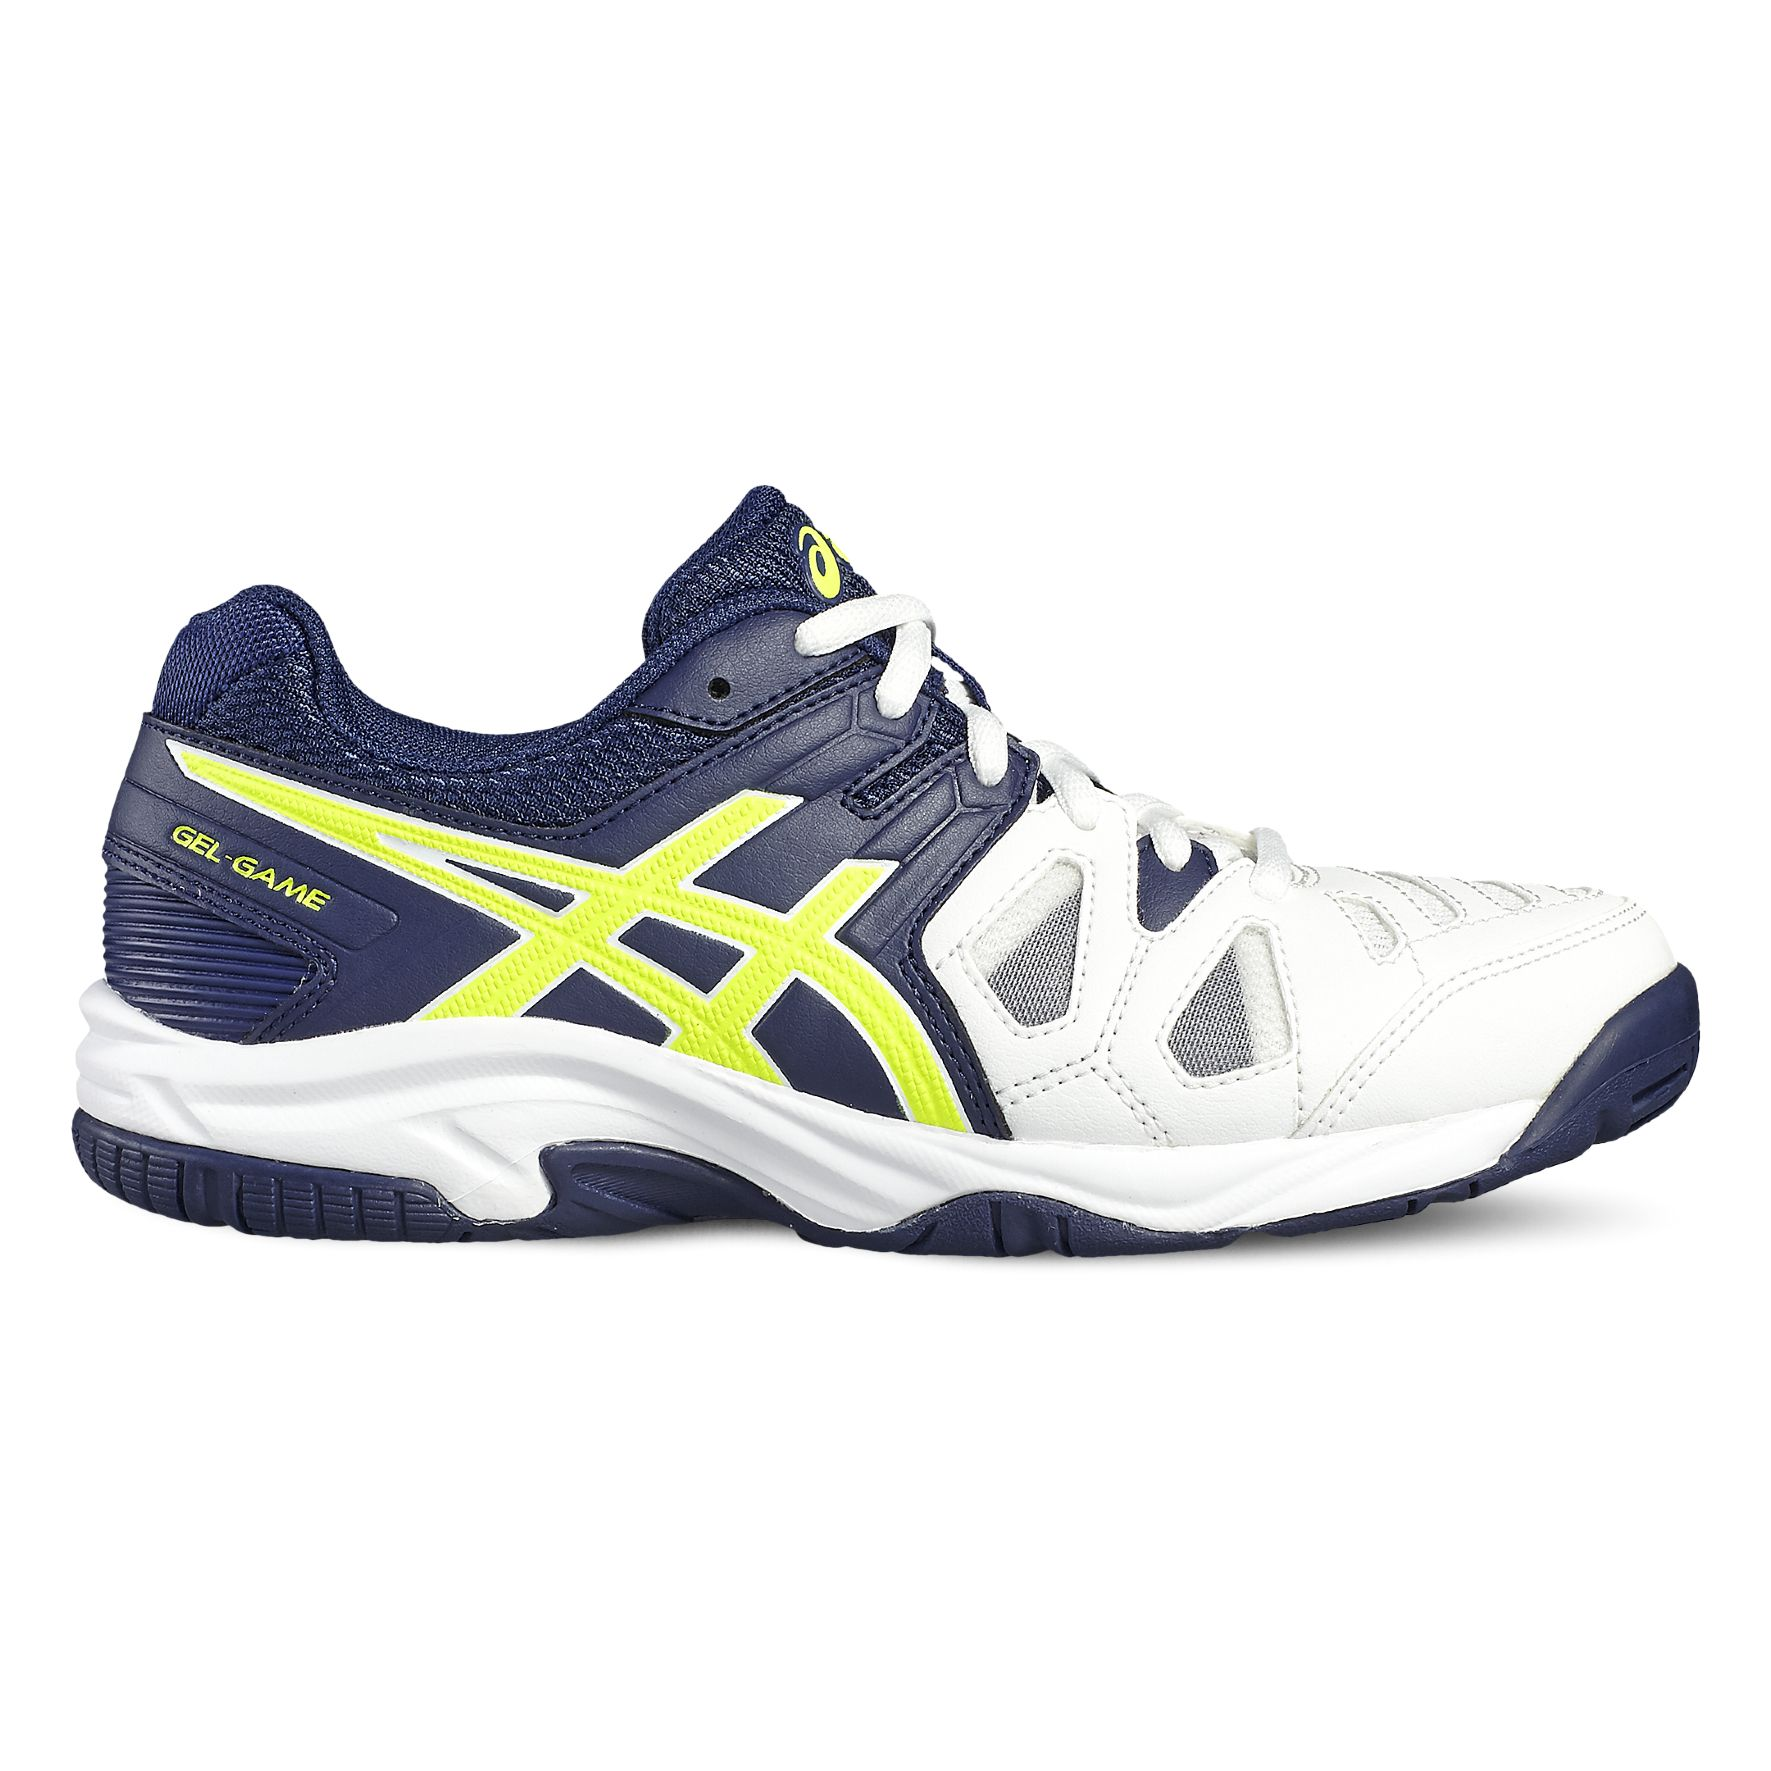 Asics Gel-Game 5 GS Boys Tennis Shoes - Sweatband.com